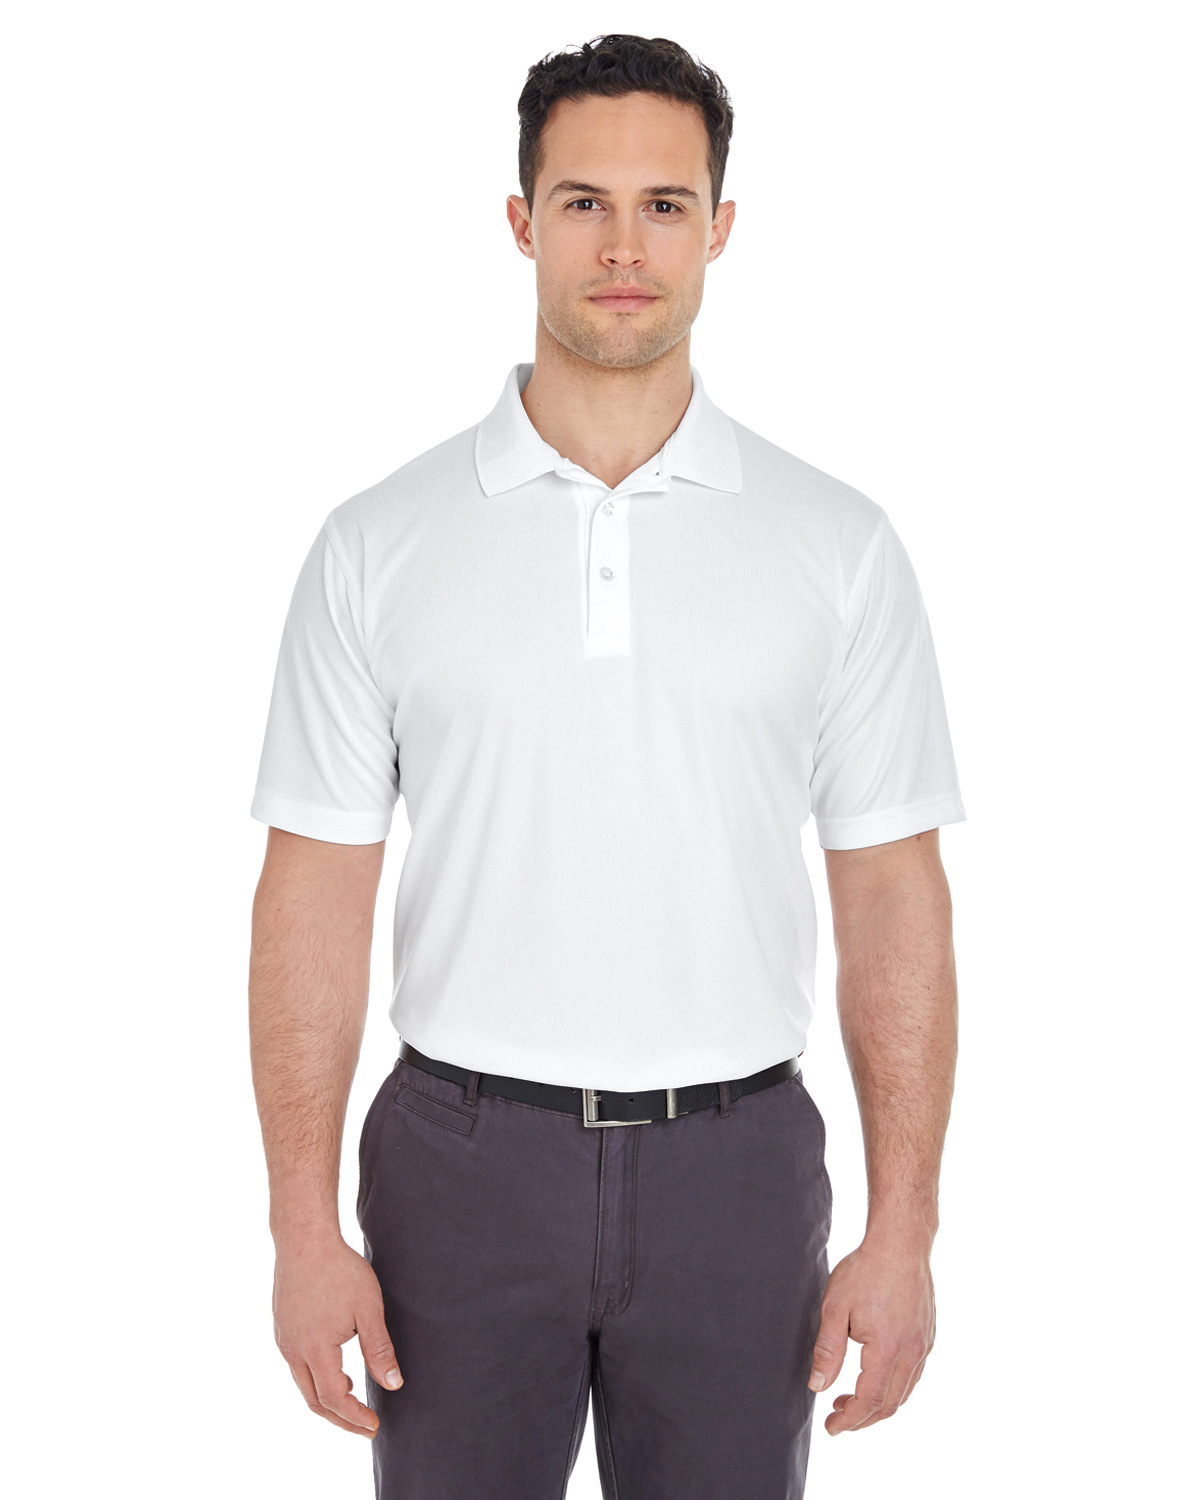 Men's Tall Cool & Dry Mesh Piqué Polo